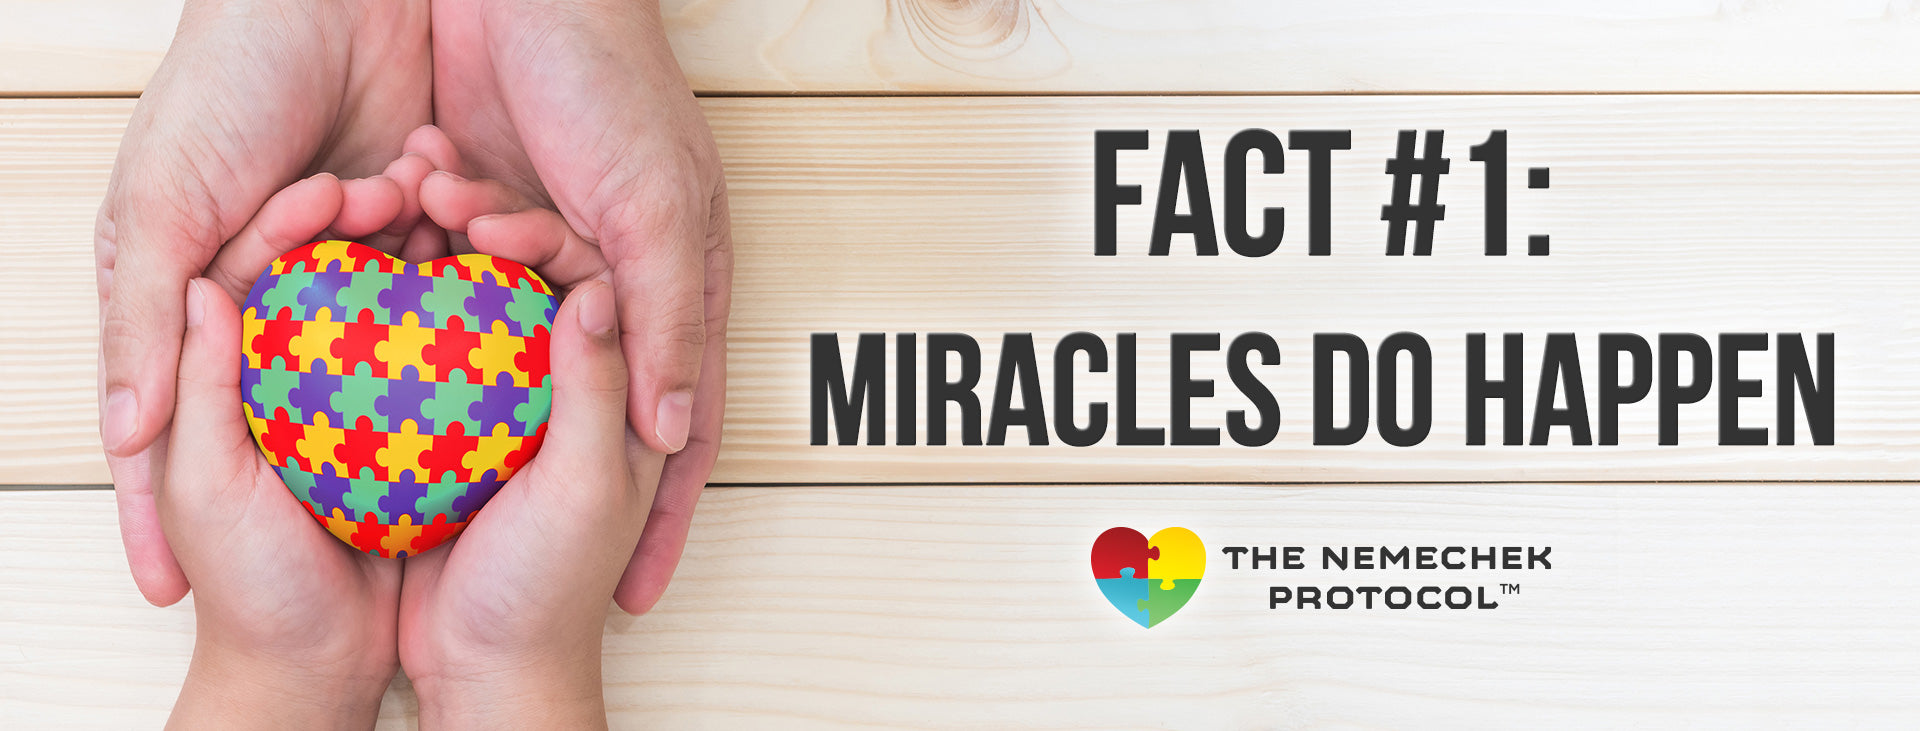 fact #1: miracles do happen - Nemechek Protocol